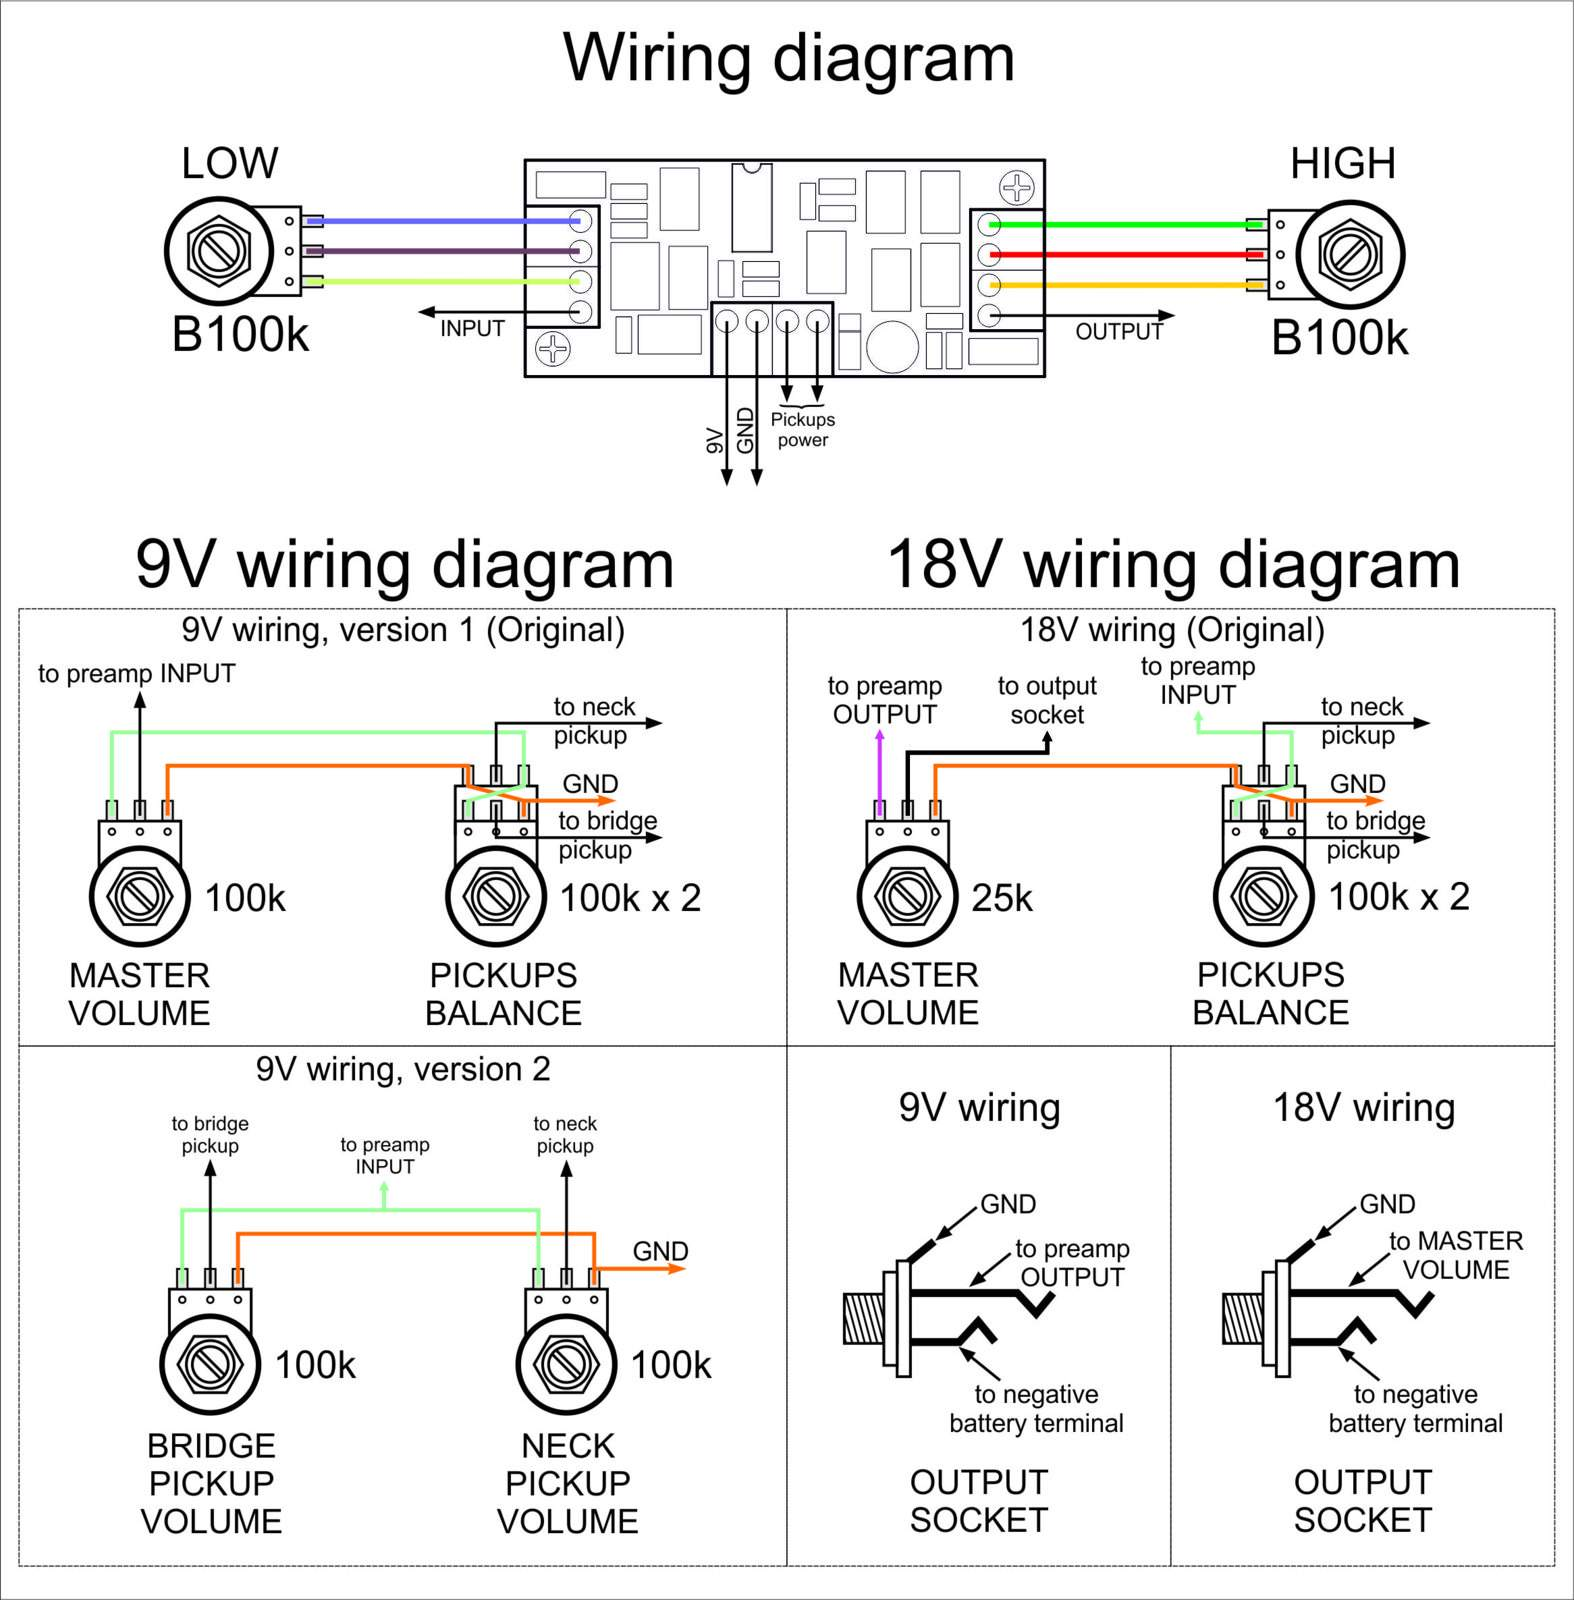 Guitar Endpin Jack Wiring Diagram For A Toyota Tacoma Auto Preamp Images